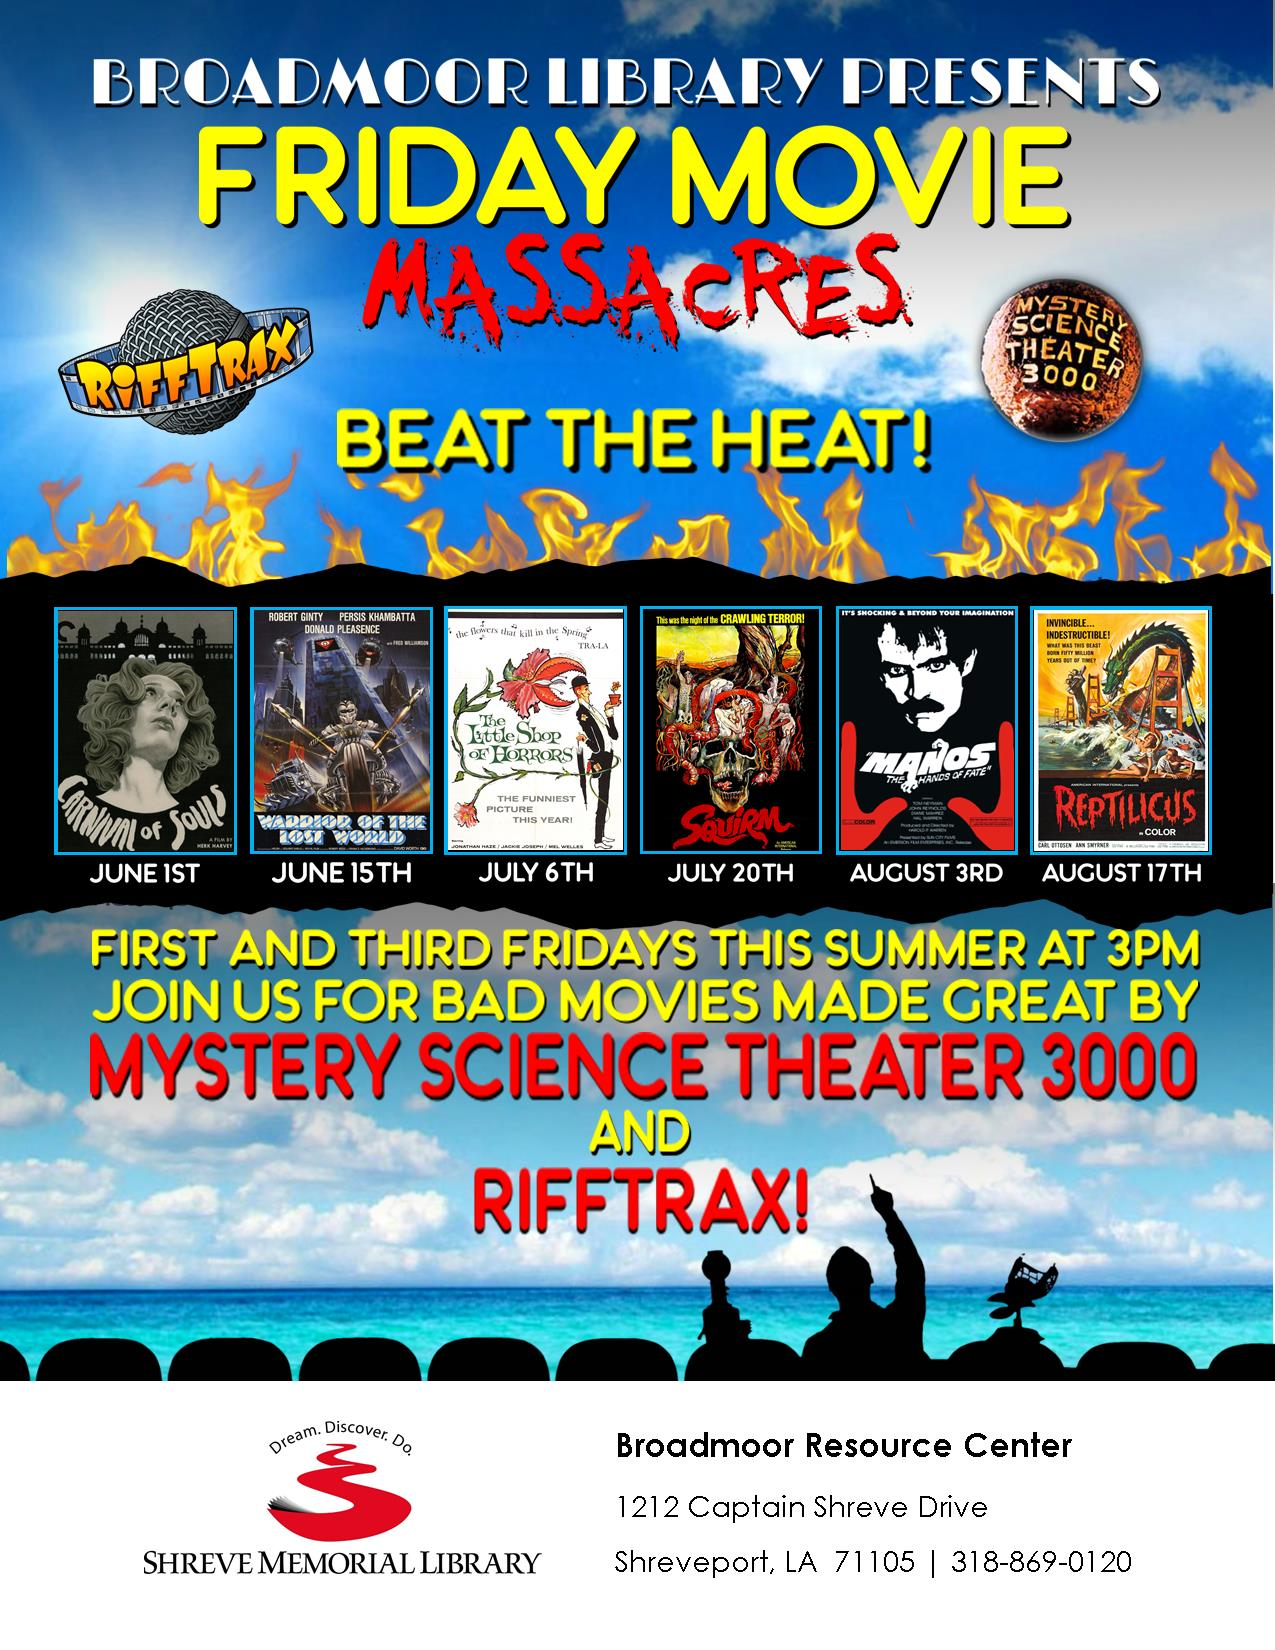 06-01--Friday Movie Massacres--Flier